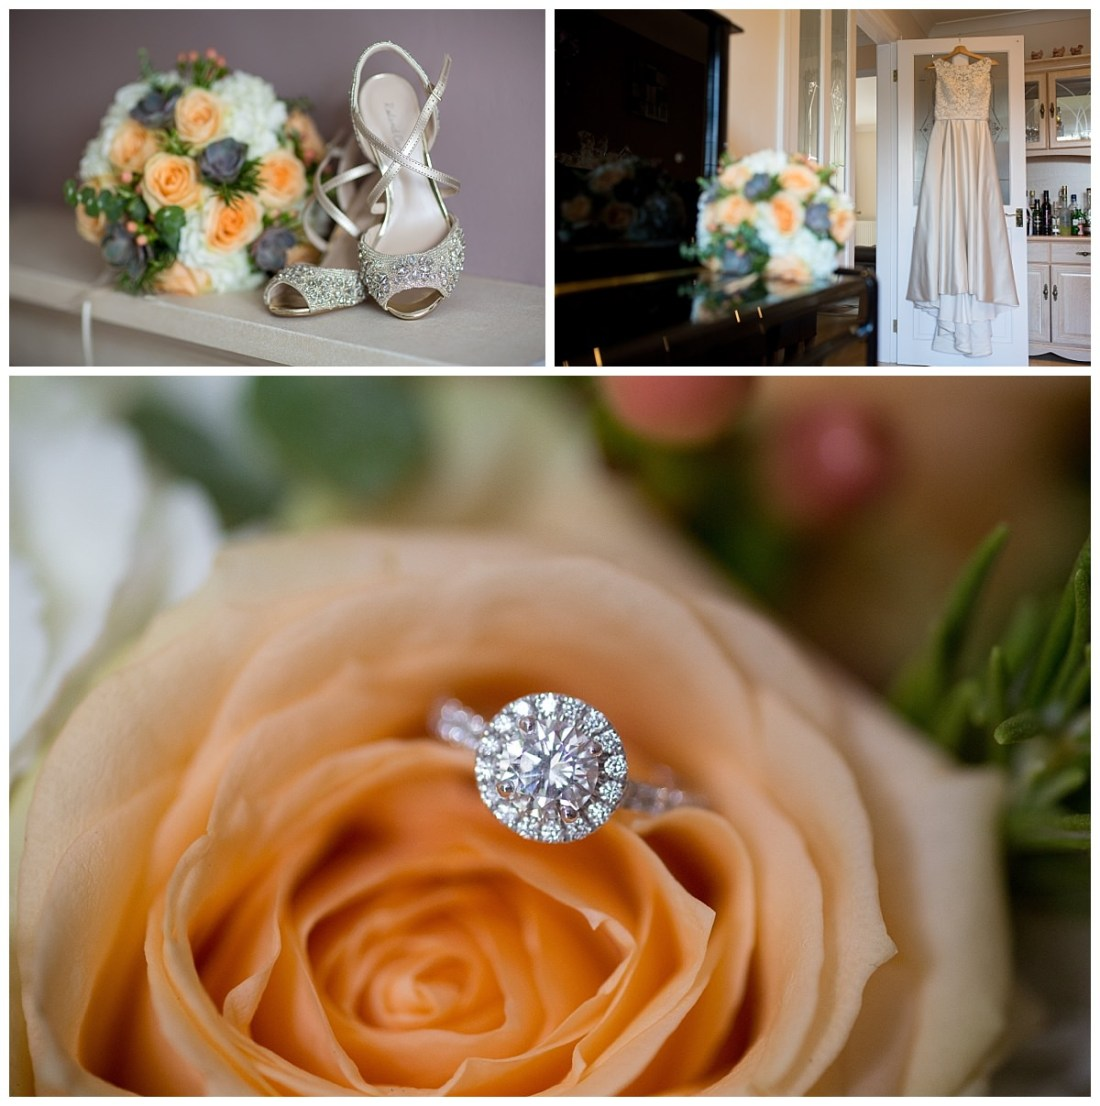 Engagement ring and bouquet